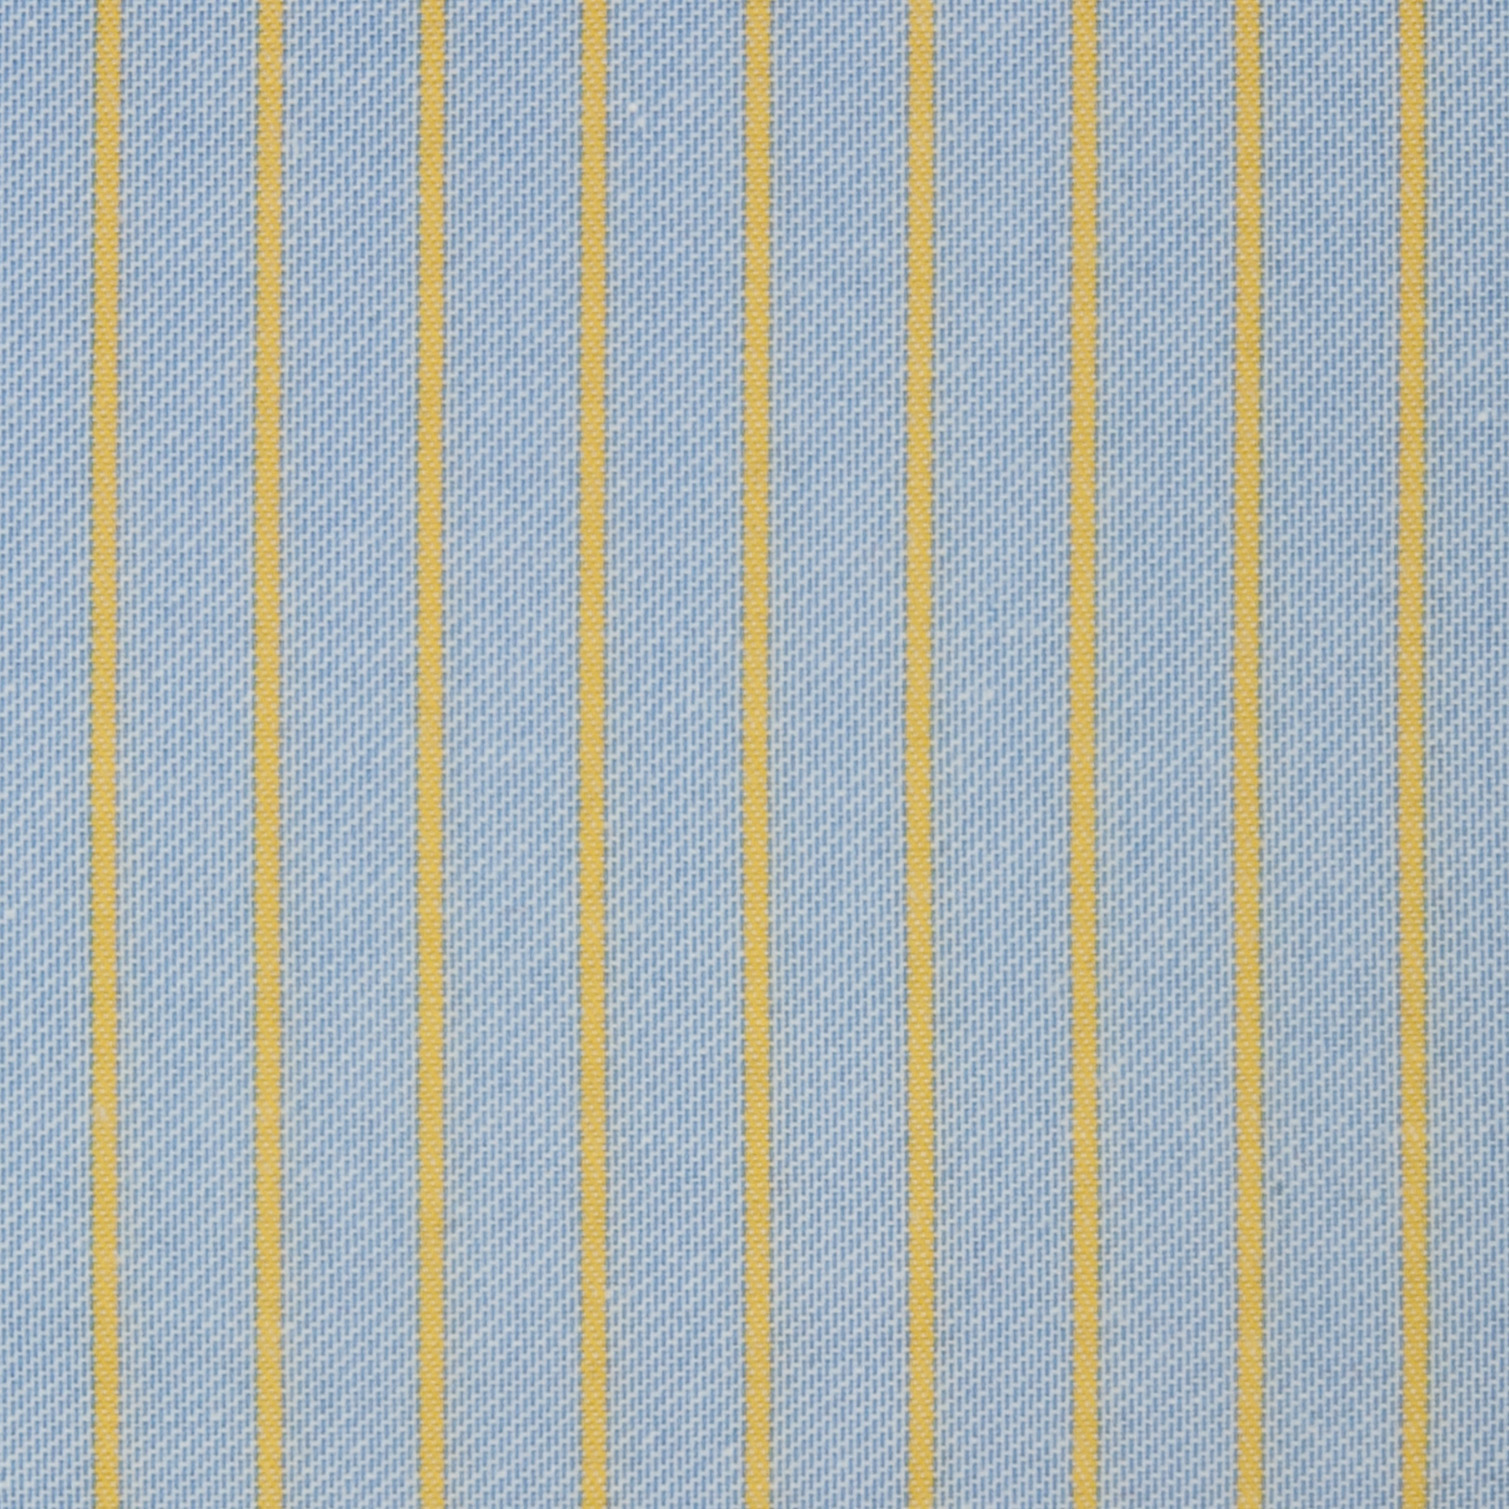 Buy tailor made shirts online - Arturo Collection - Yellow Stripe on Grey